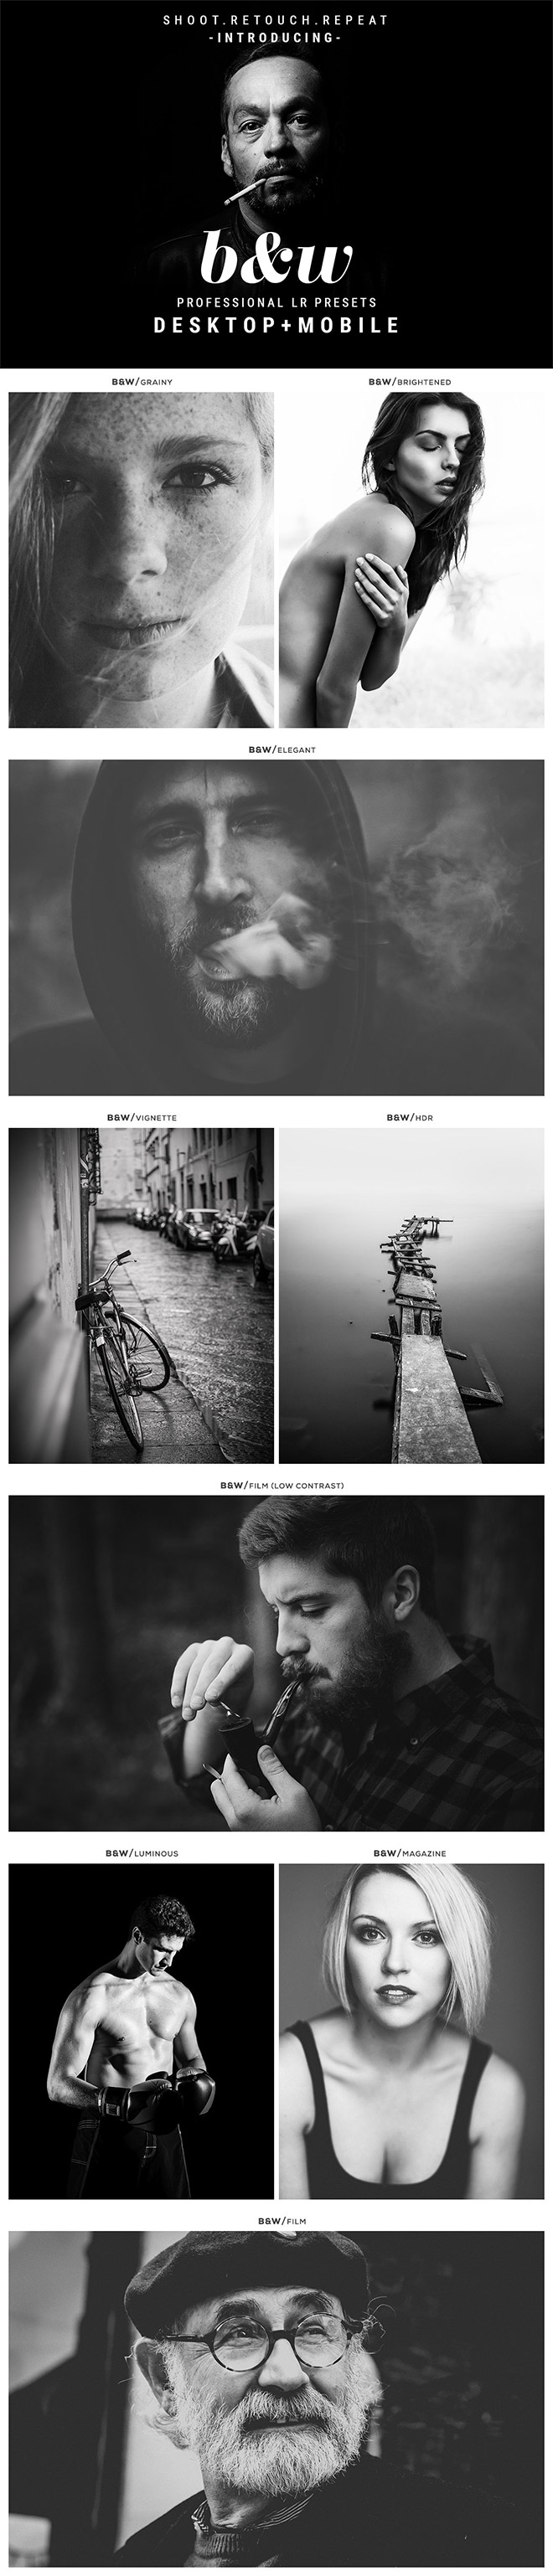 Black and White Lightroom Presets for Access All Areas Members